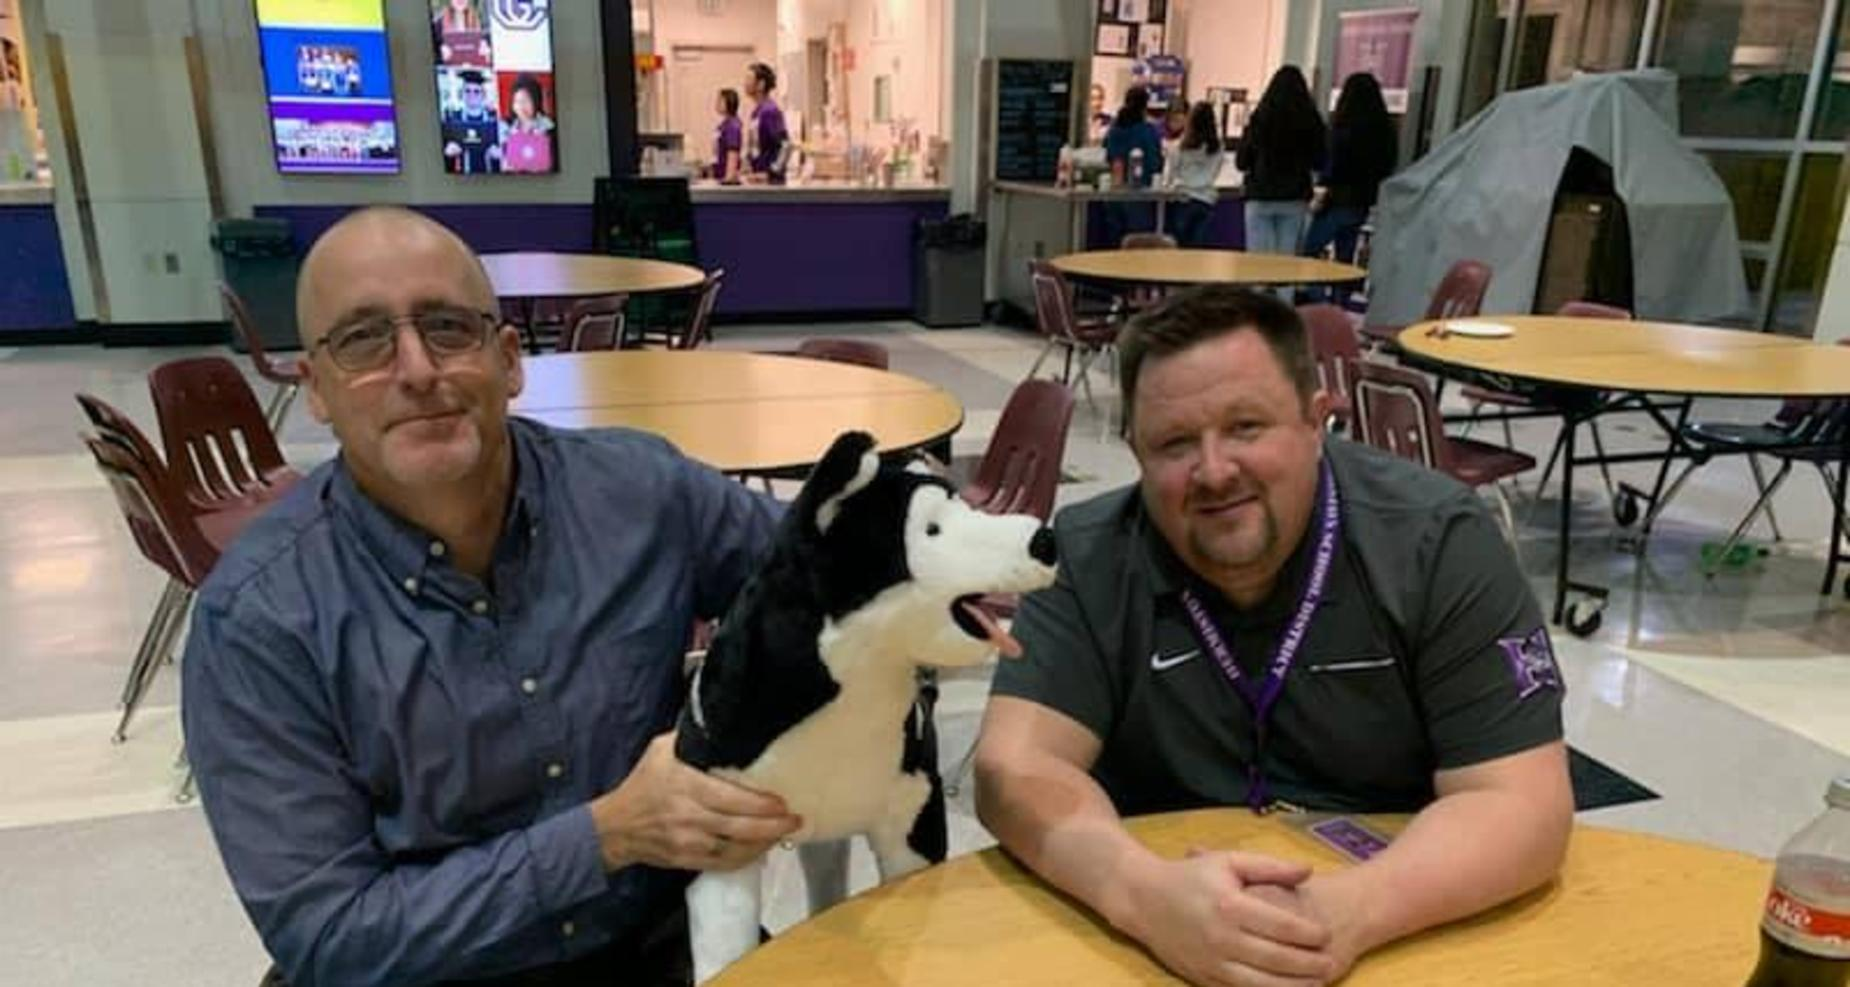 Mr. Spoo and Mr. Usher with Husky dog.